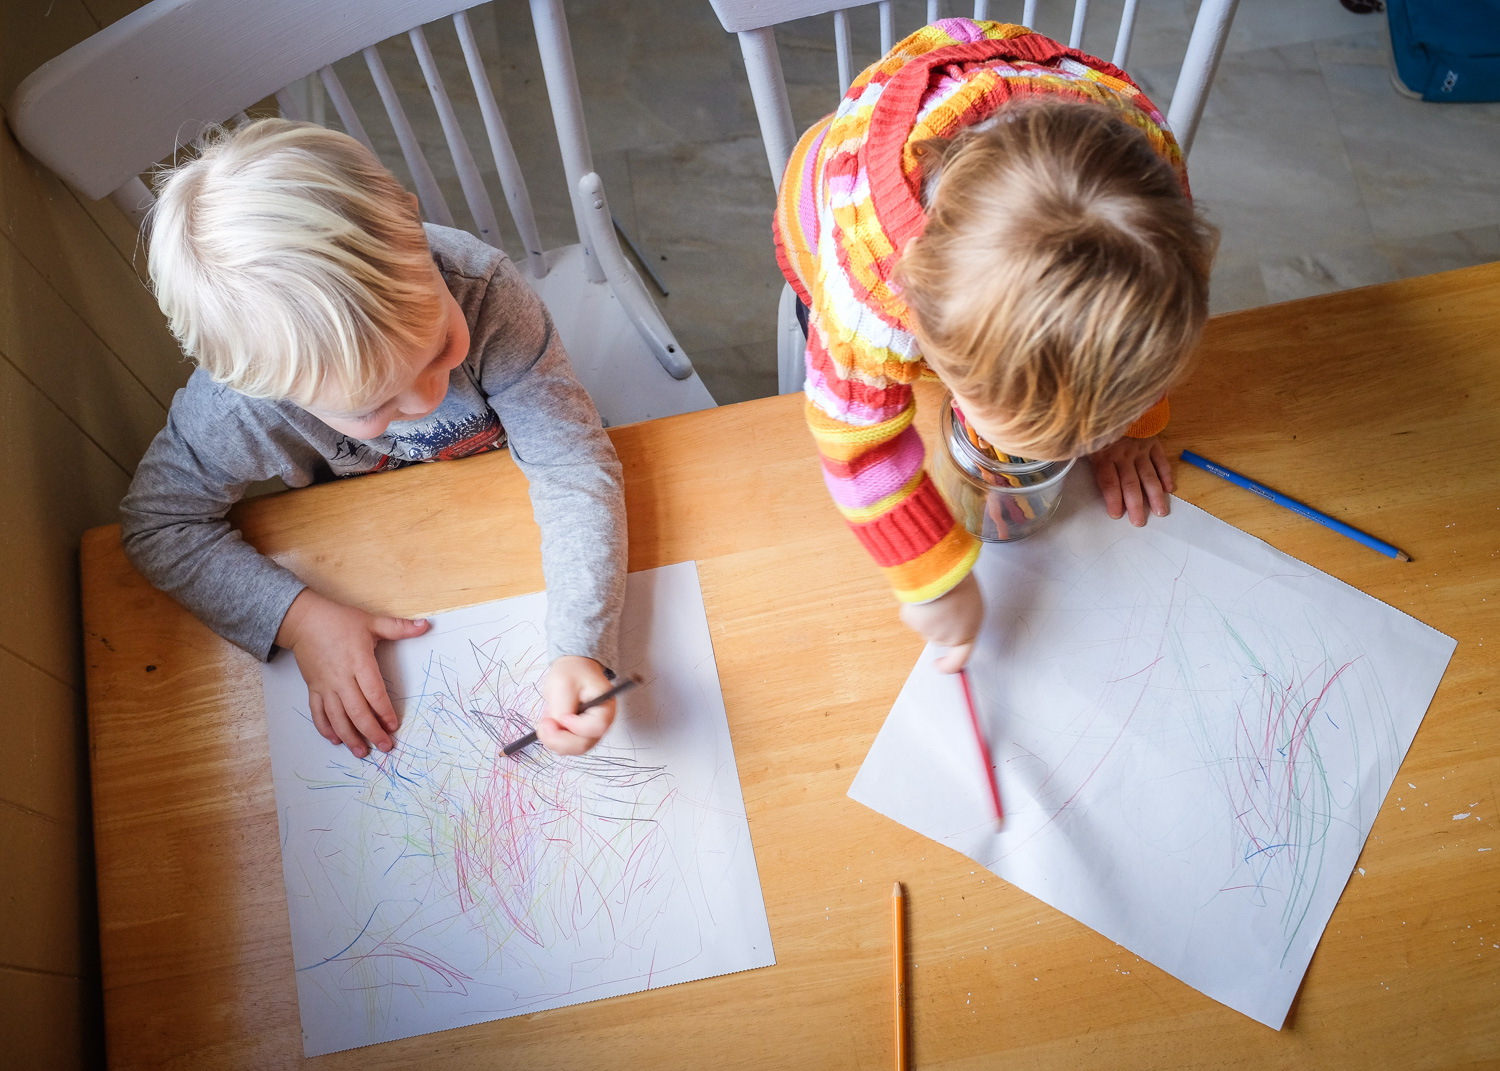 Image: I used a bird's eye view to photograph this scene of my kids drawing.